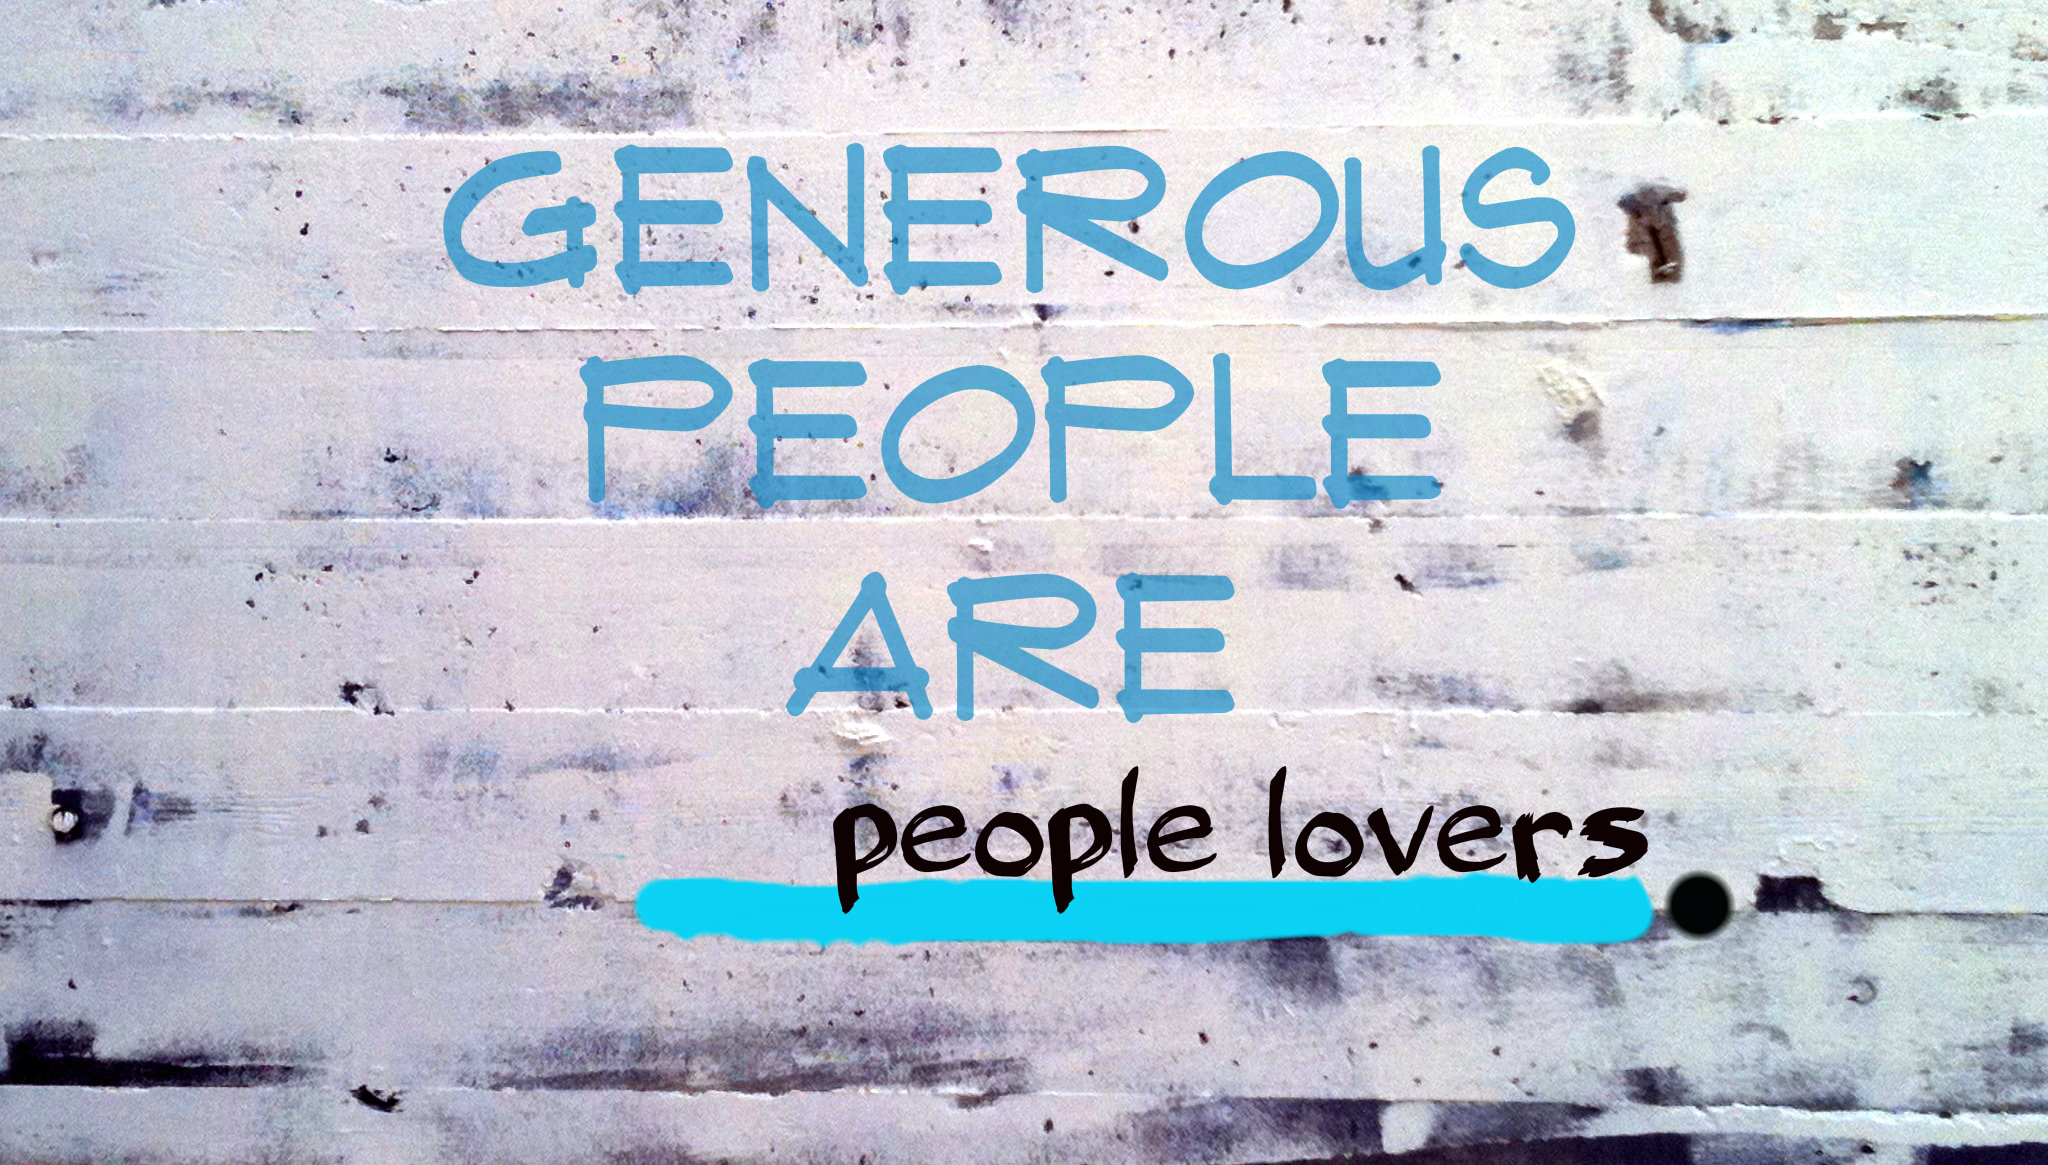 generous people arepeoplelovers